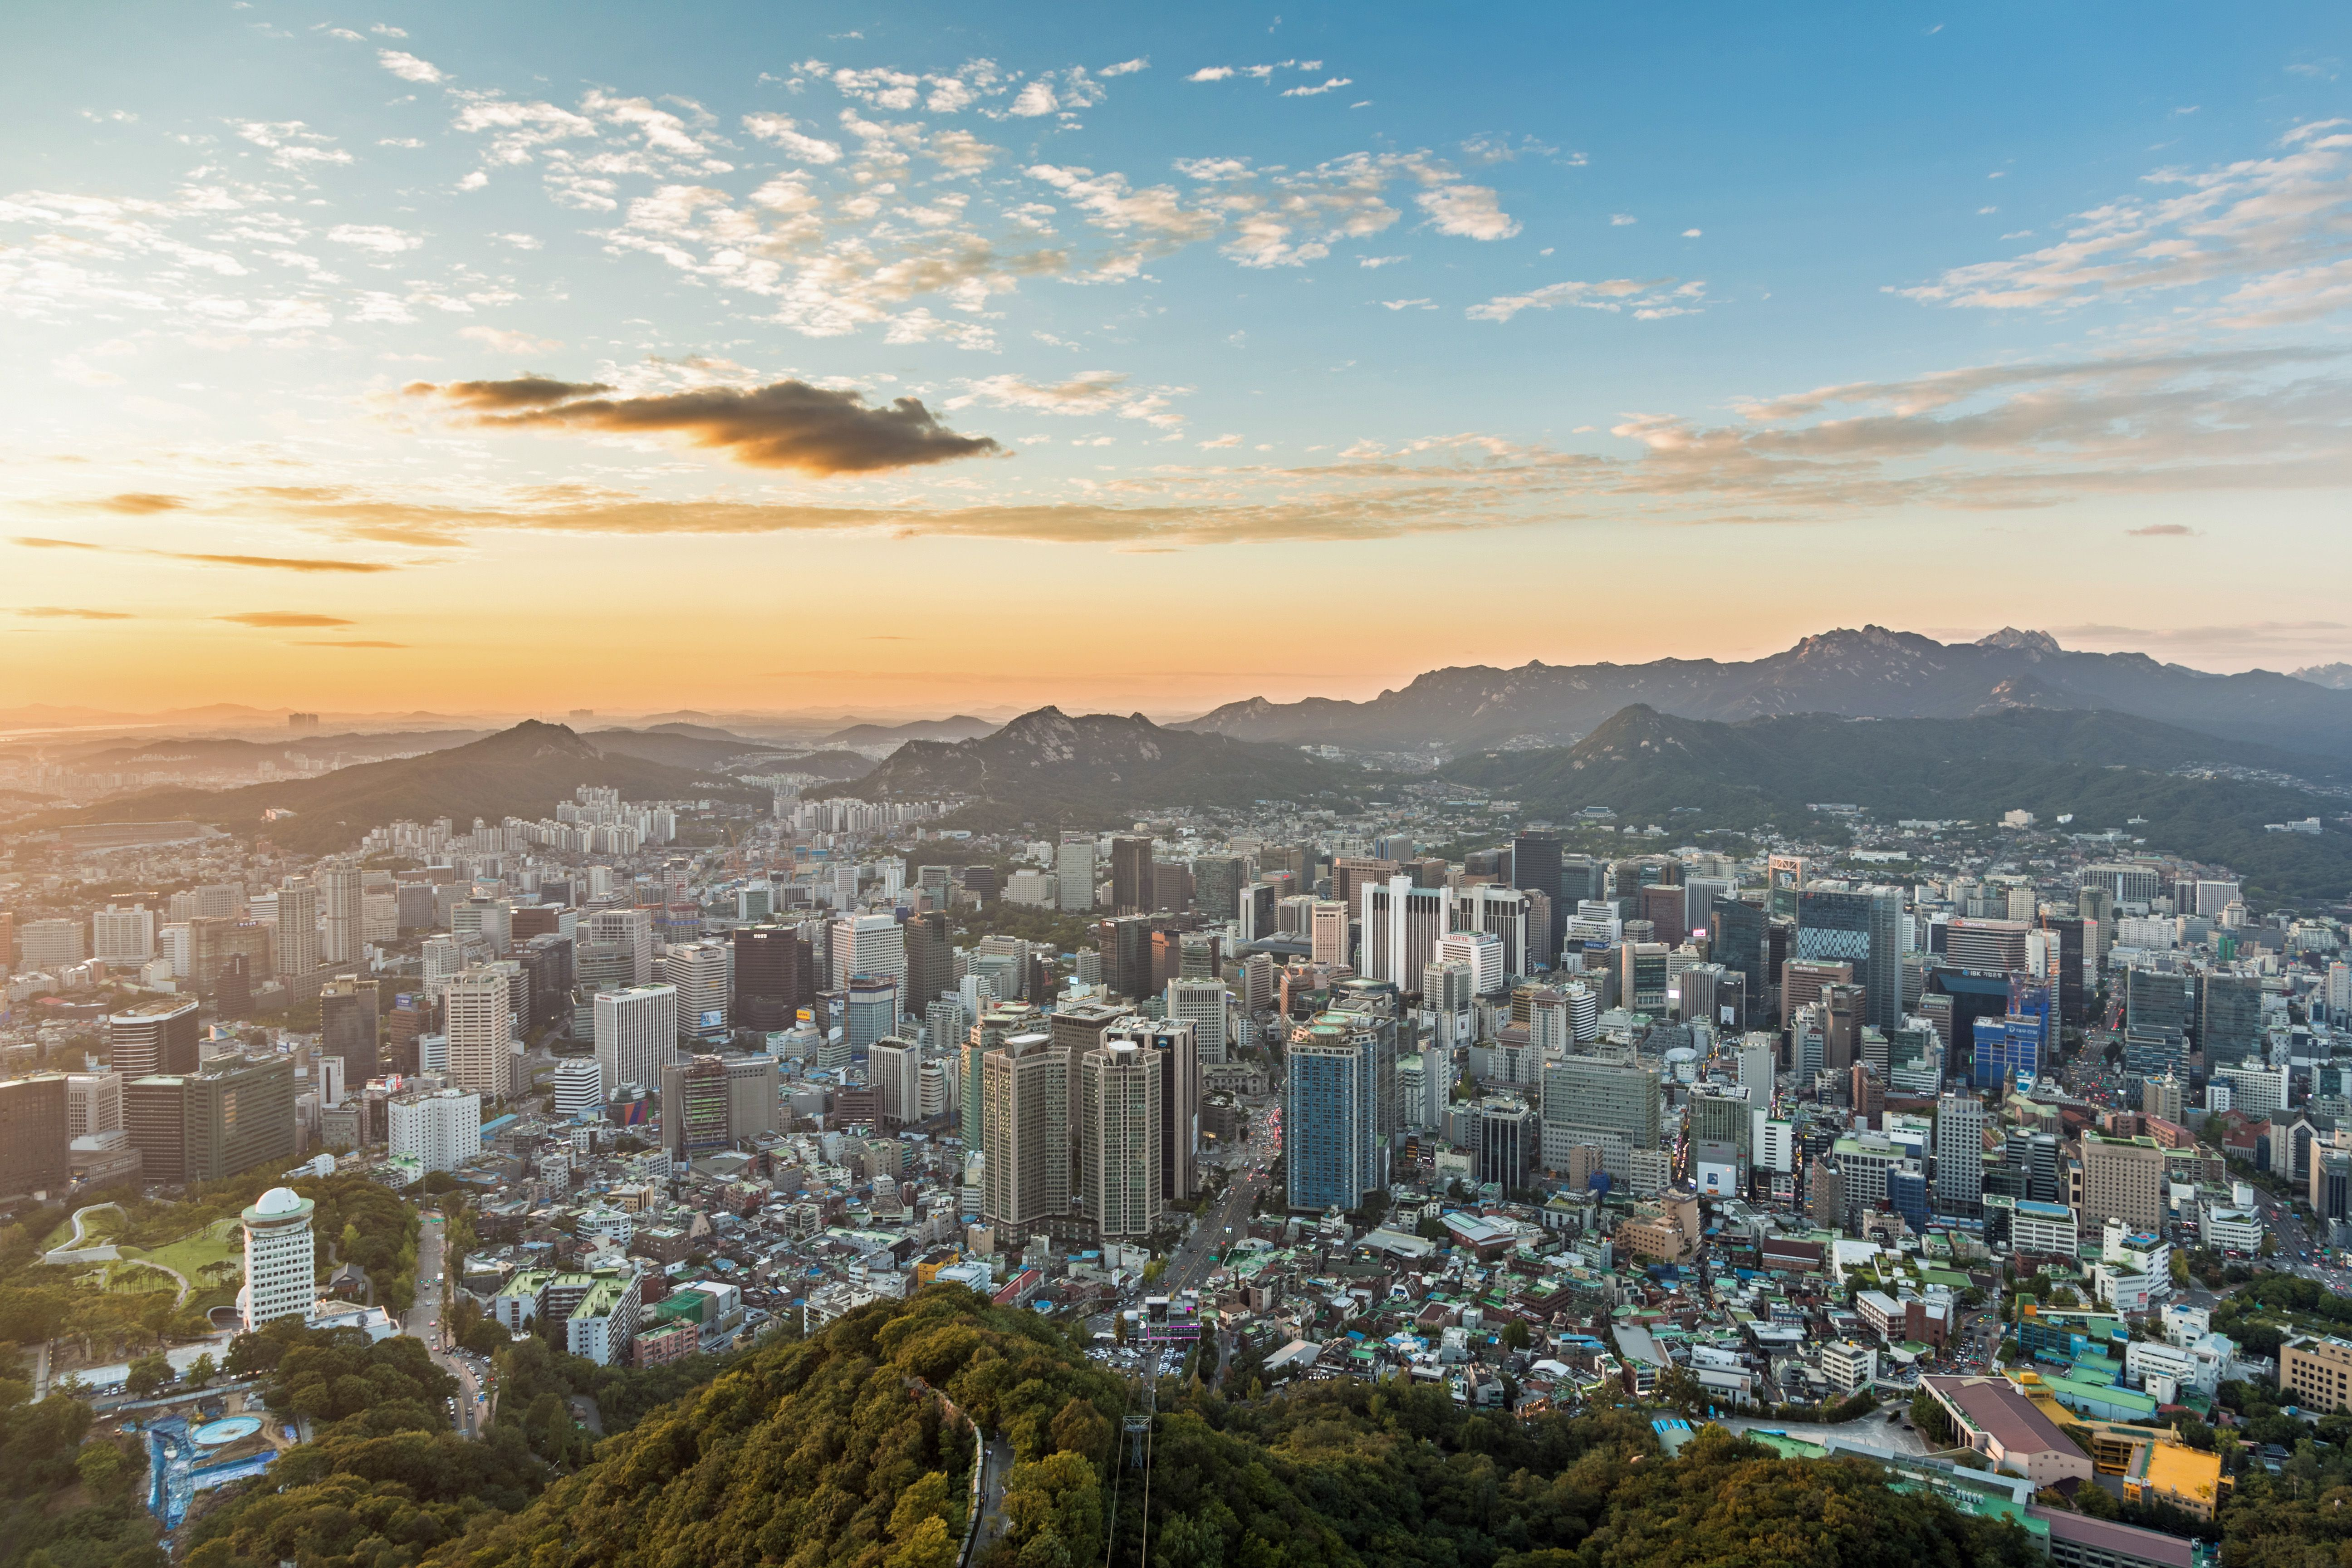 A Travel Guide for How to Visit Seoul on a Budget